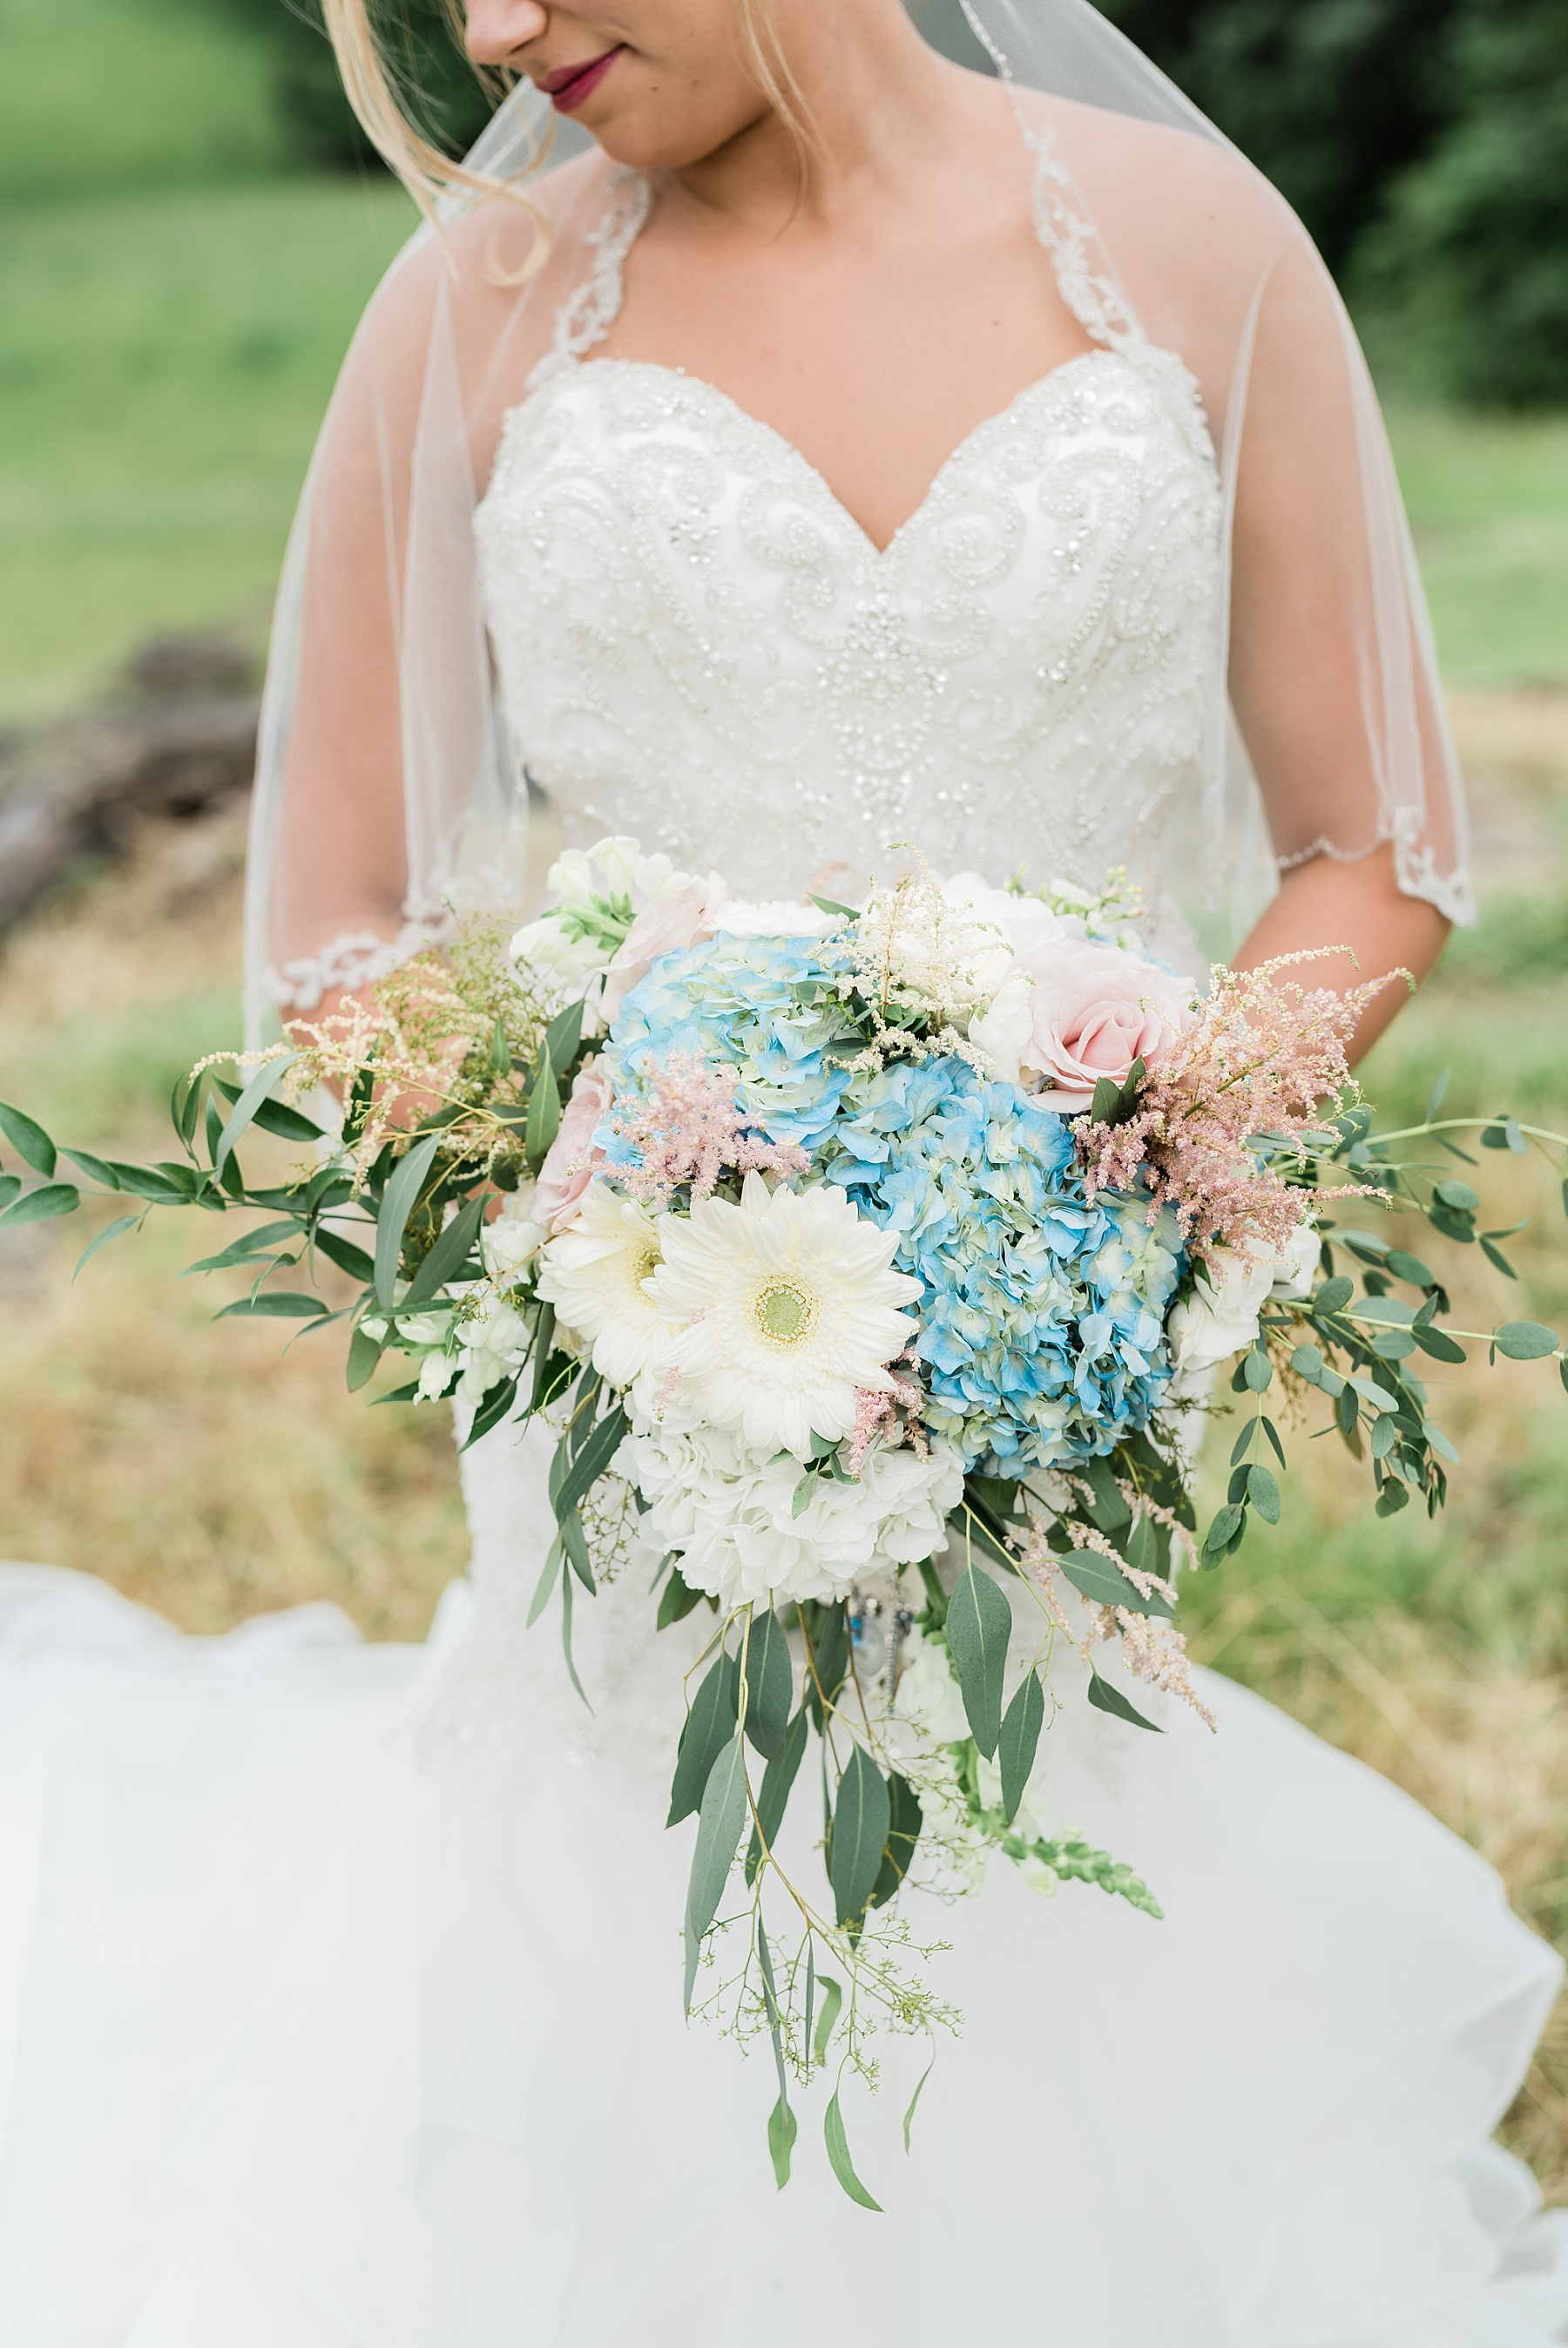 Sky Blue and Quartz Spring Wedding at Open Fields of Family Farm by Kelsi Kliethermes Photography Best Missouri and Maui Wedding Photographer_0051.jpg